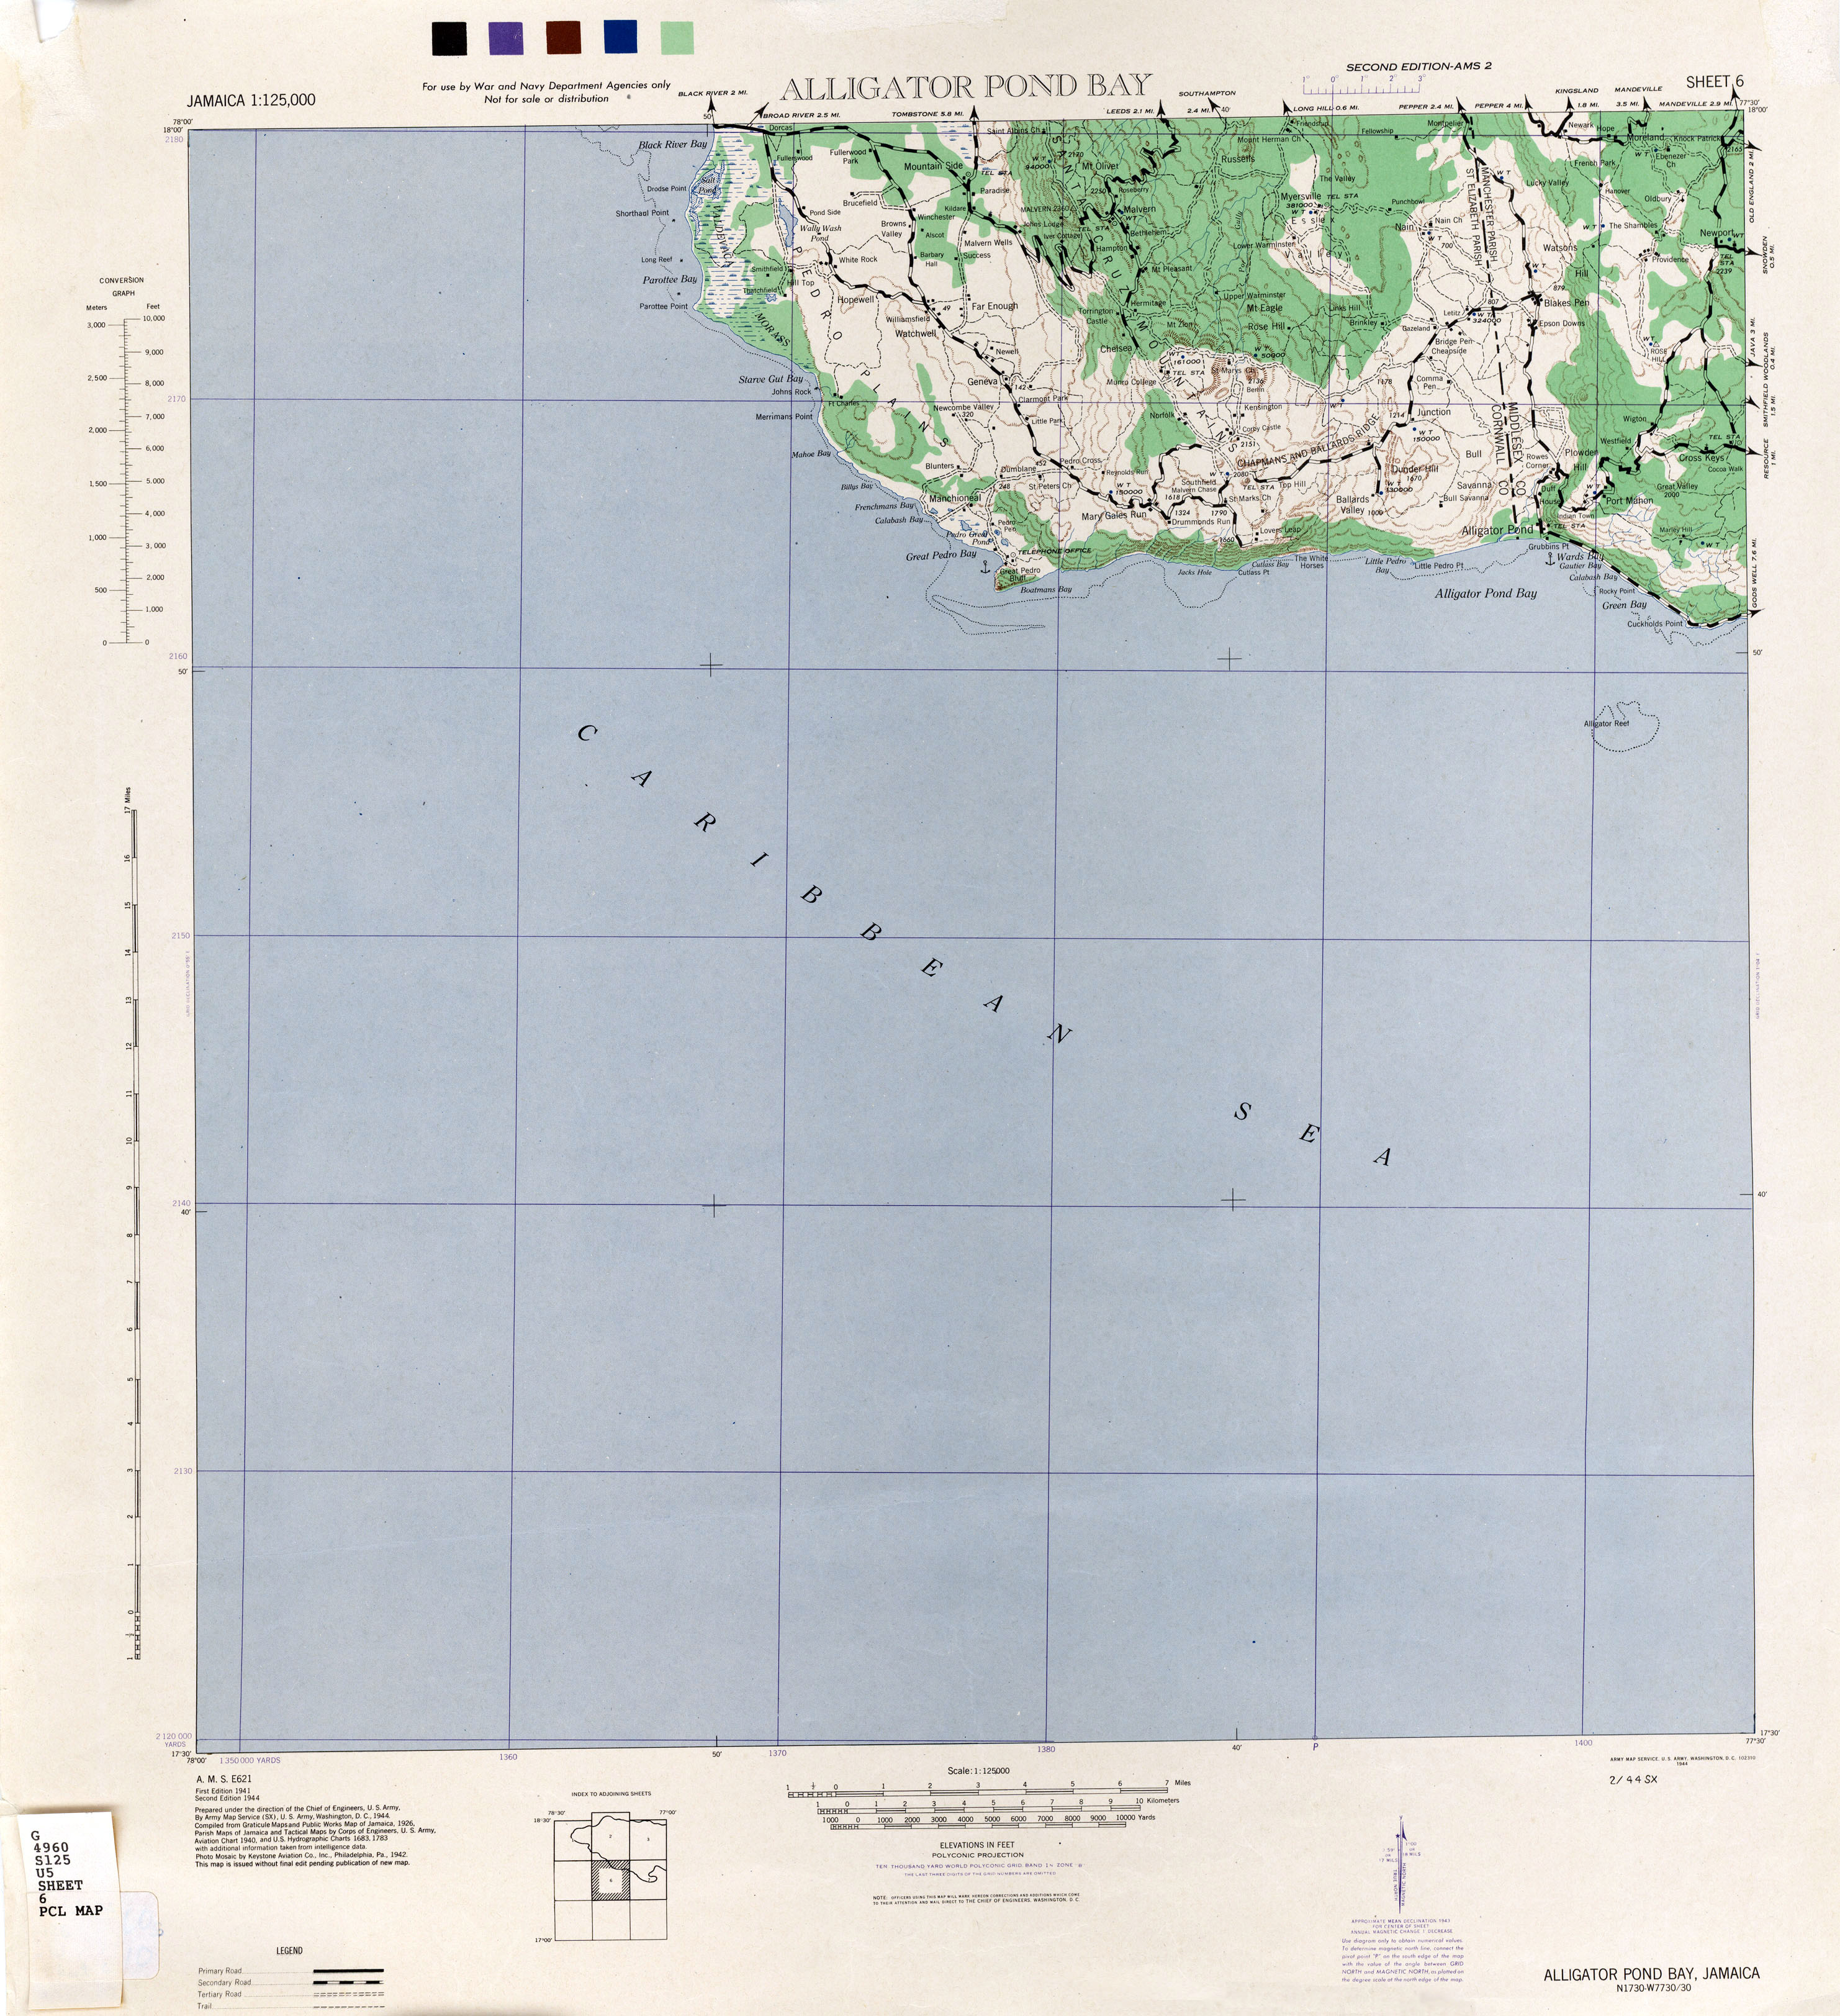 Jamaica AMS Topographic Maps PerryCastañeda Map Collection UT - Map of us and jamaica